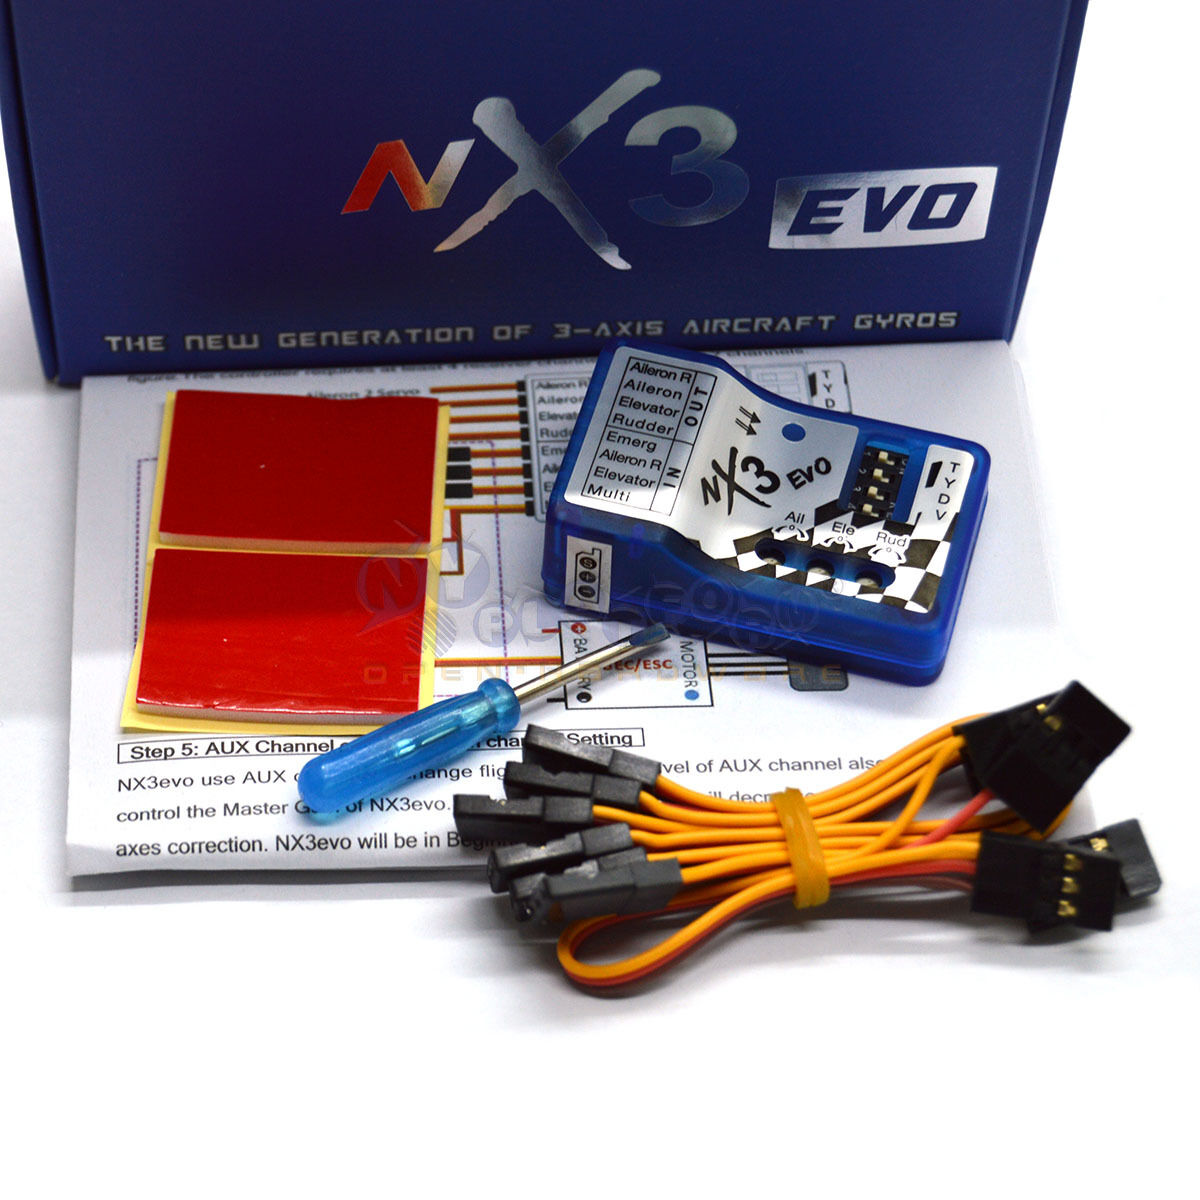 NX3 EVO EVO EVO 3D Flight Stabilization Controller Gyro Balance For RC Air US selle dd5d25